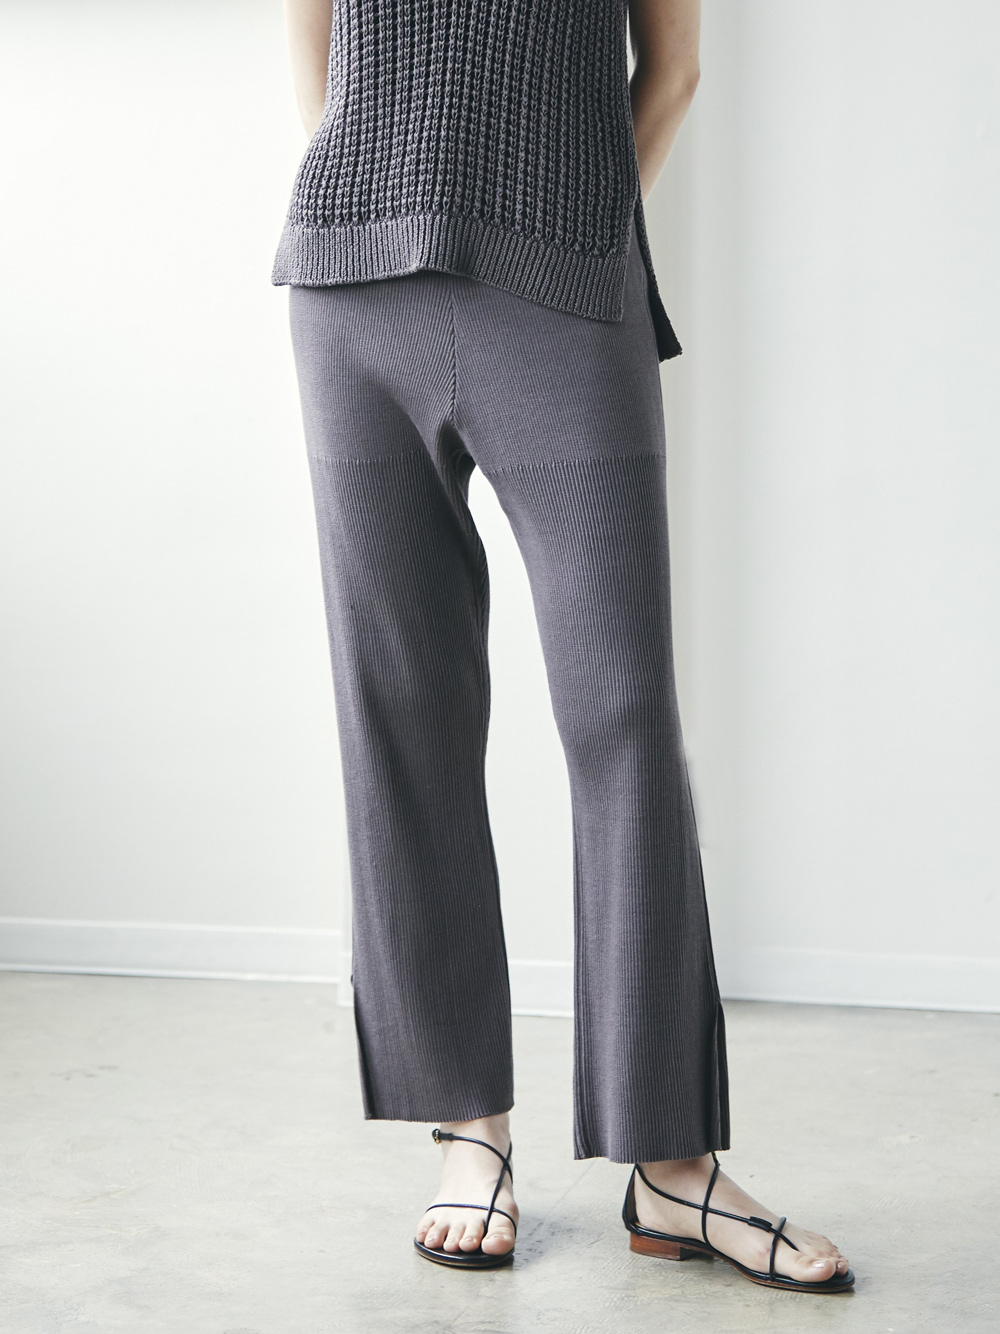 hi-twist cotton knit pants